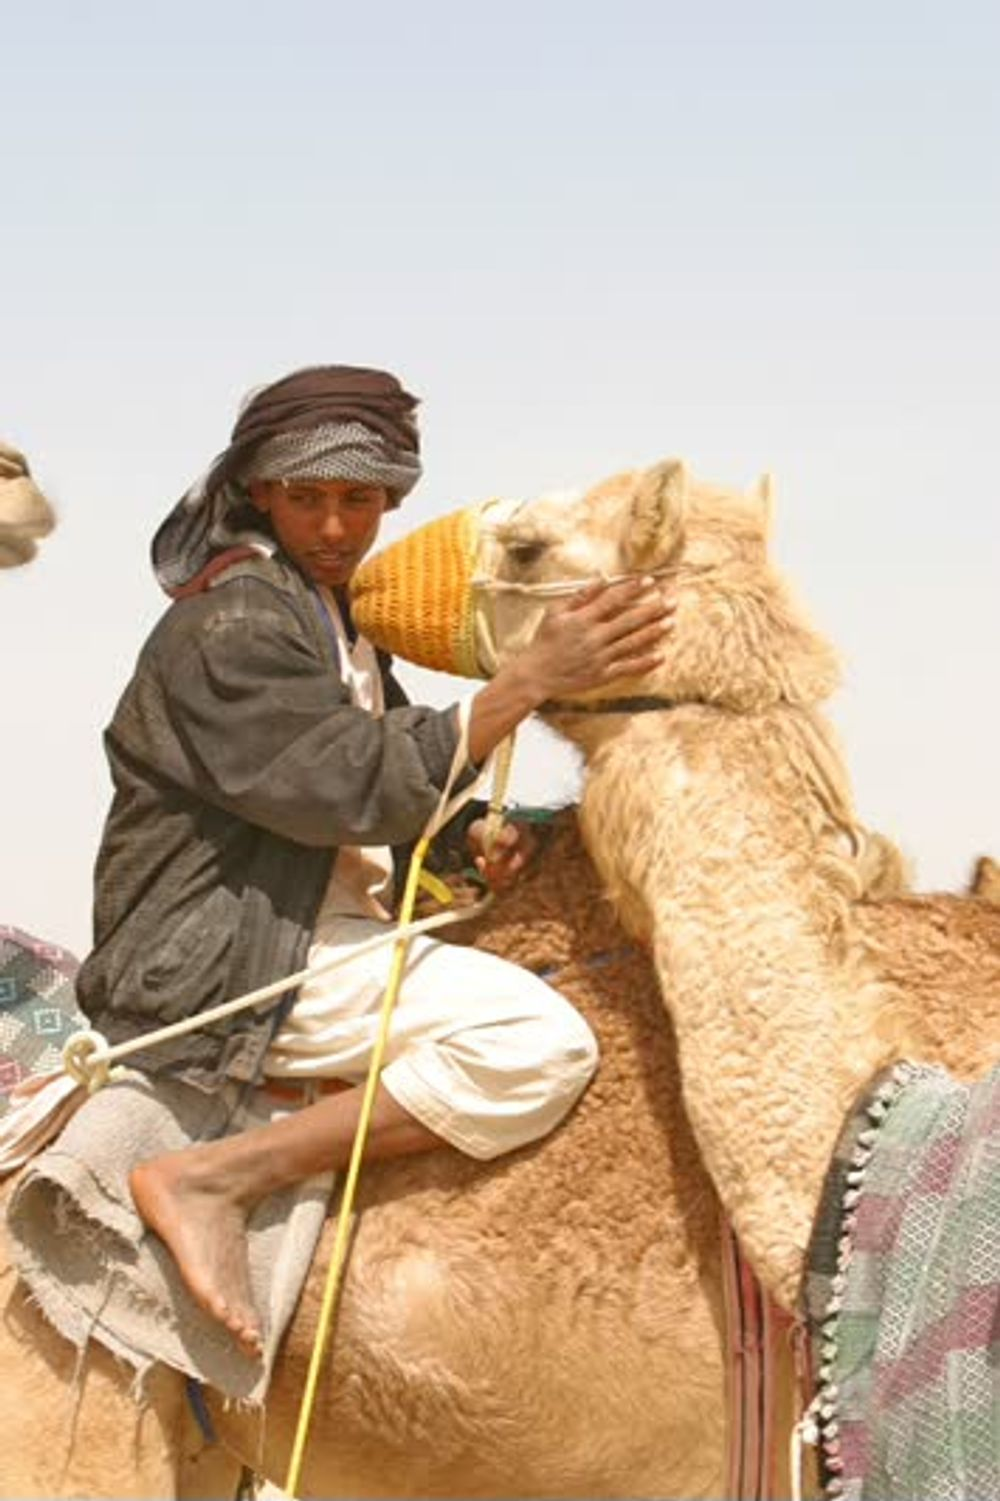 title: Camel in the desert 2